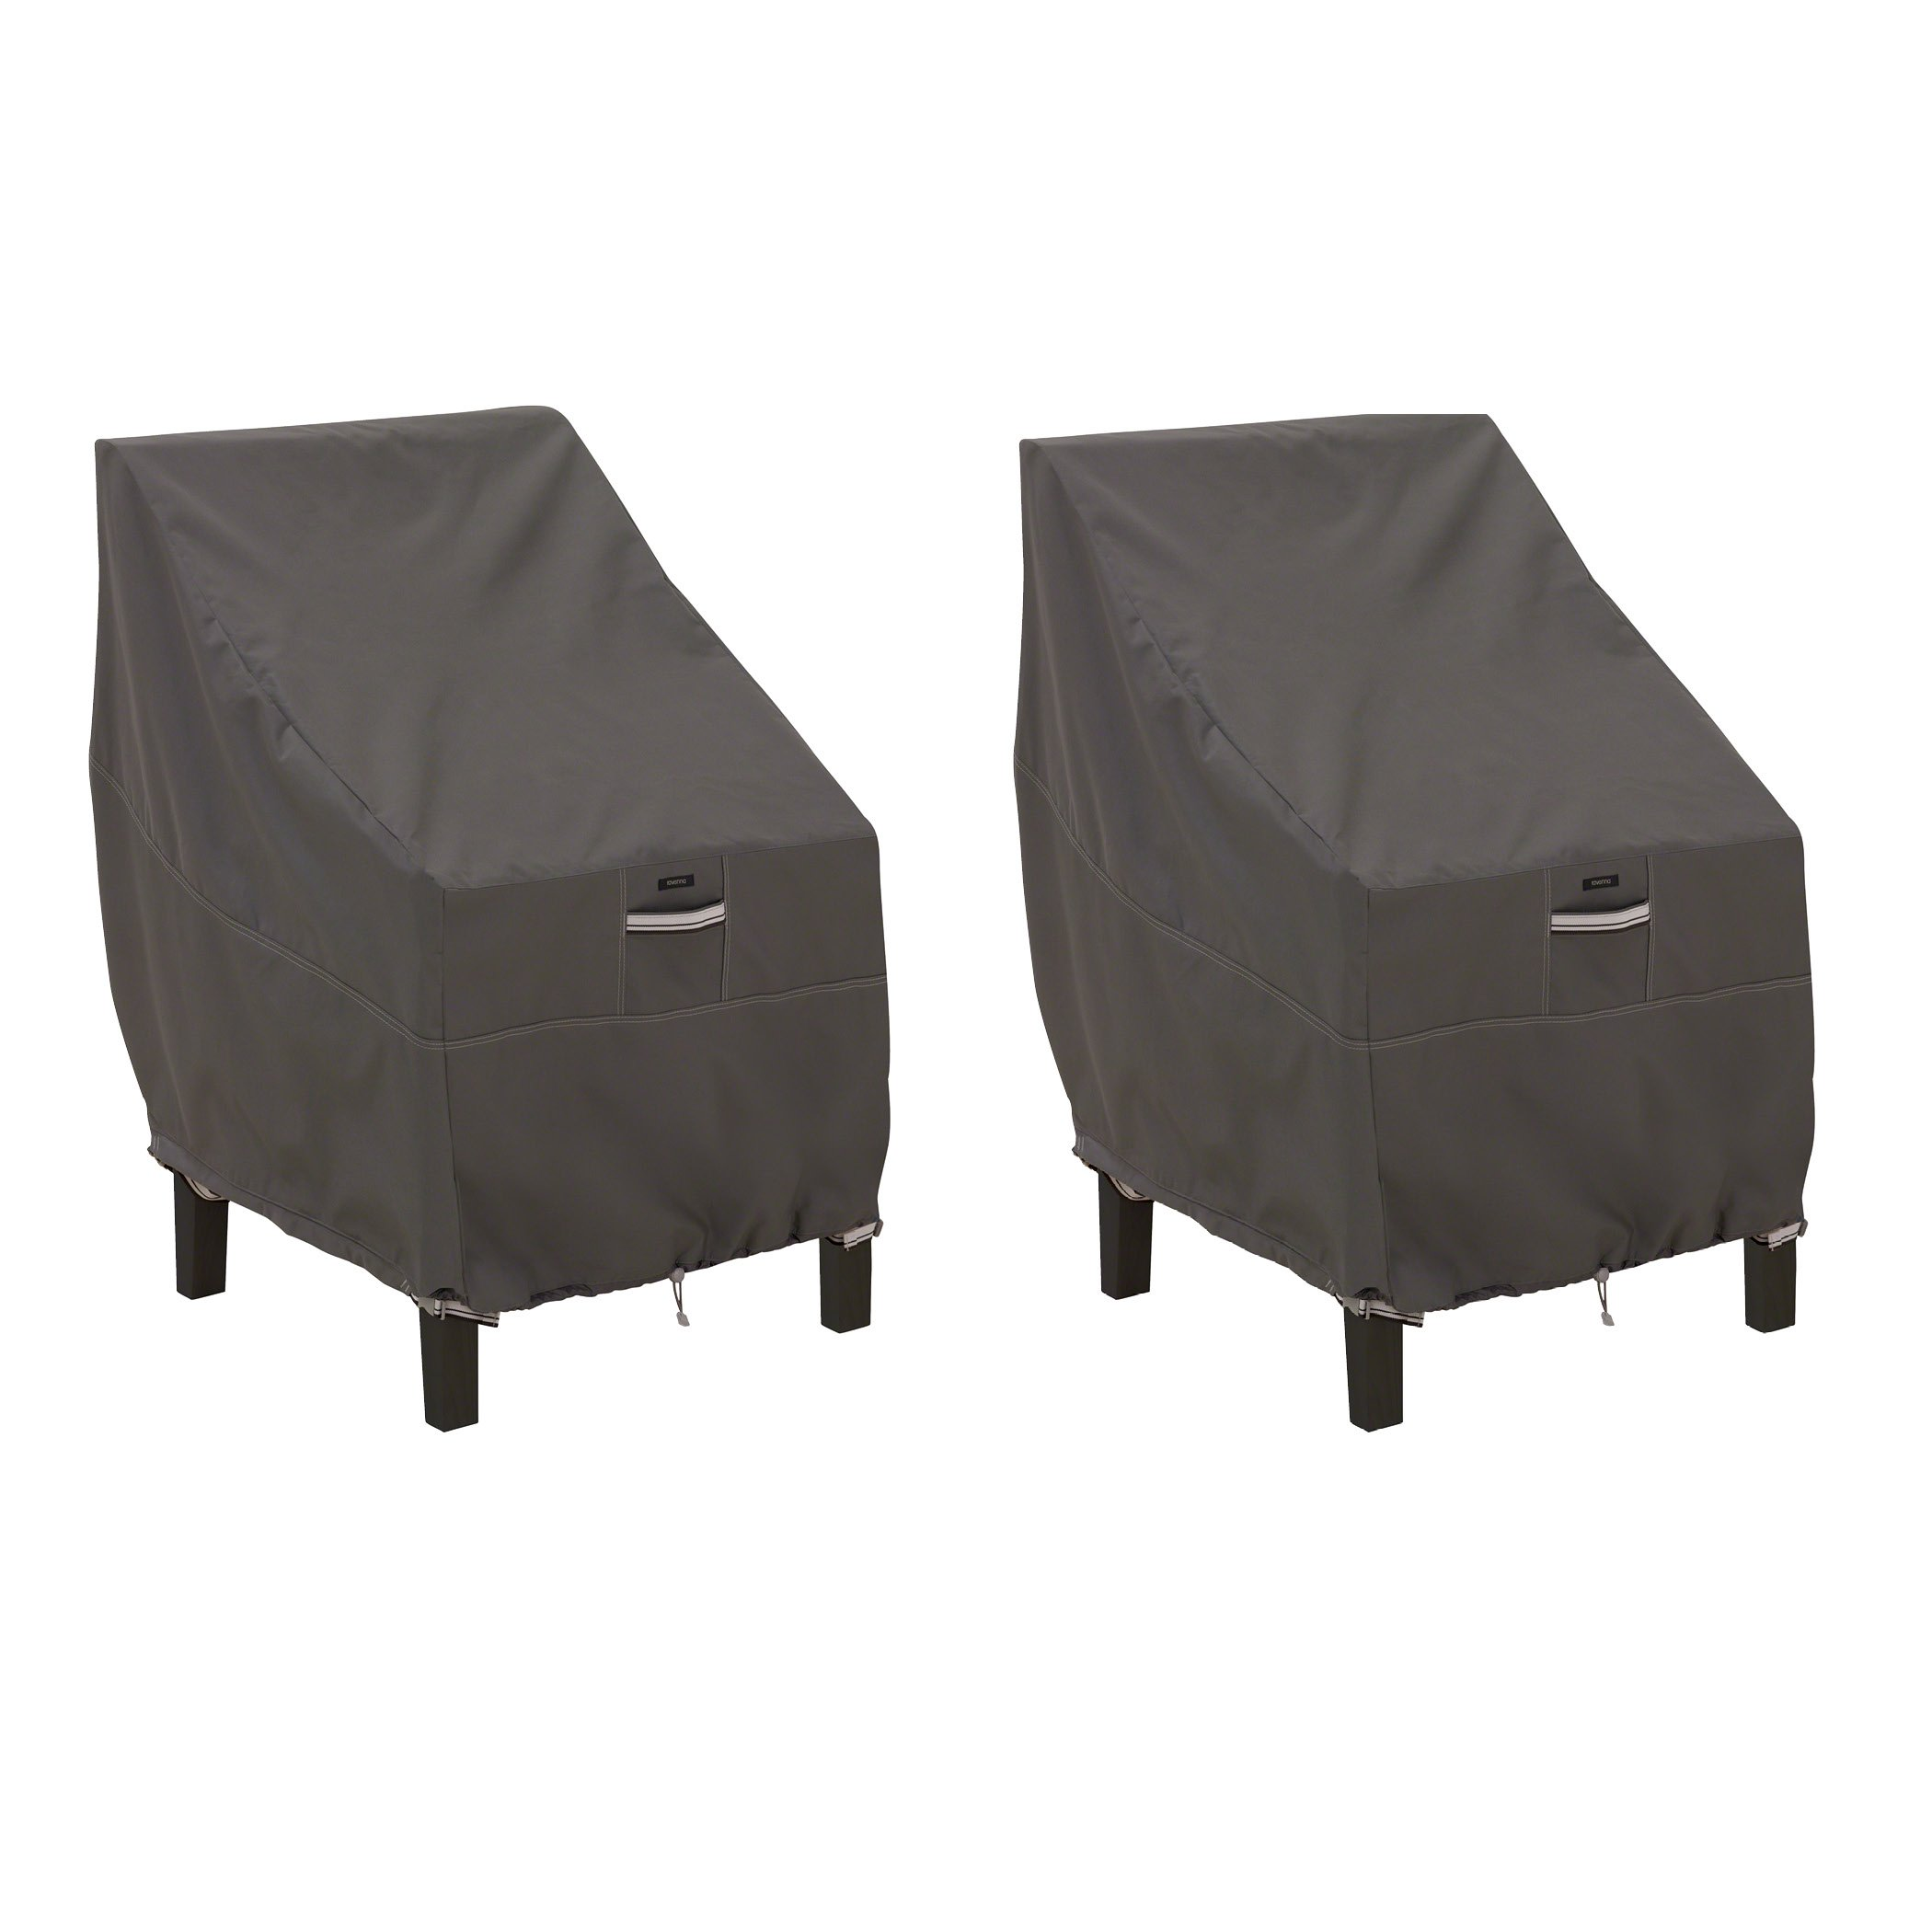 Classic Accessories Ravenna Standard Dining Patio Chair Cover (2-Pack)